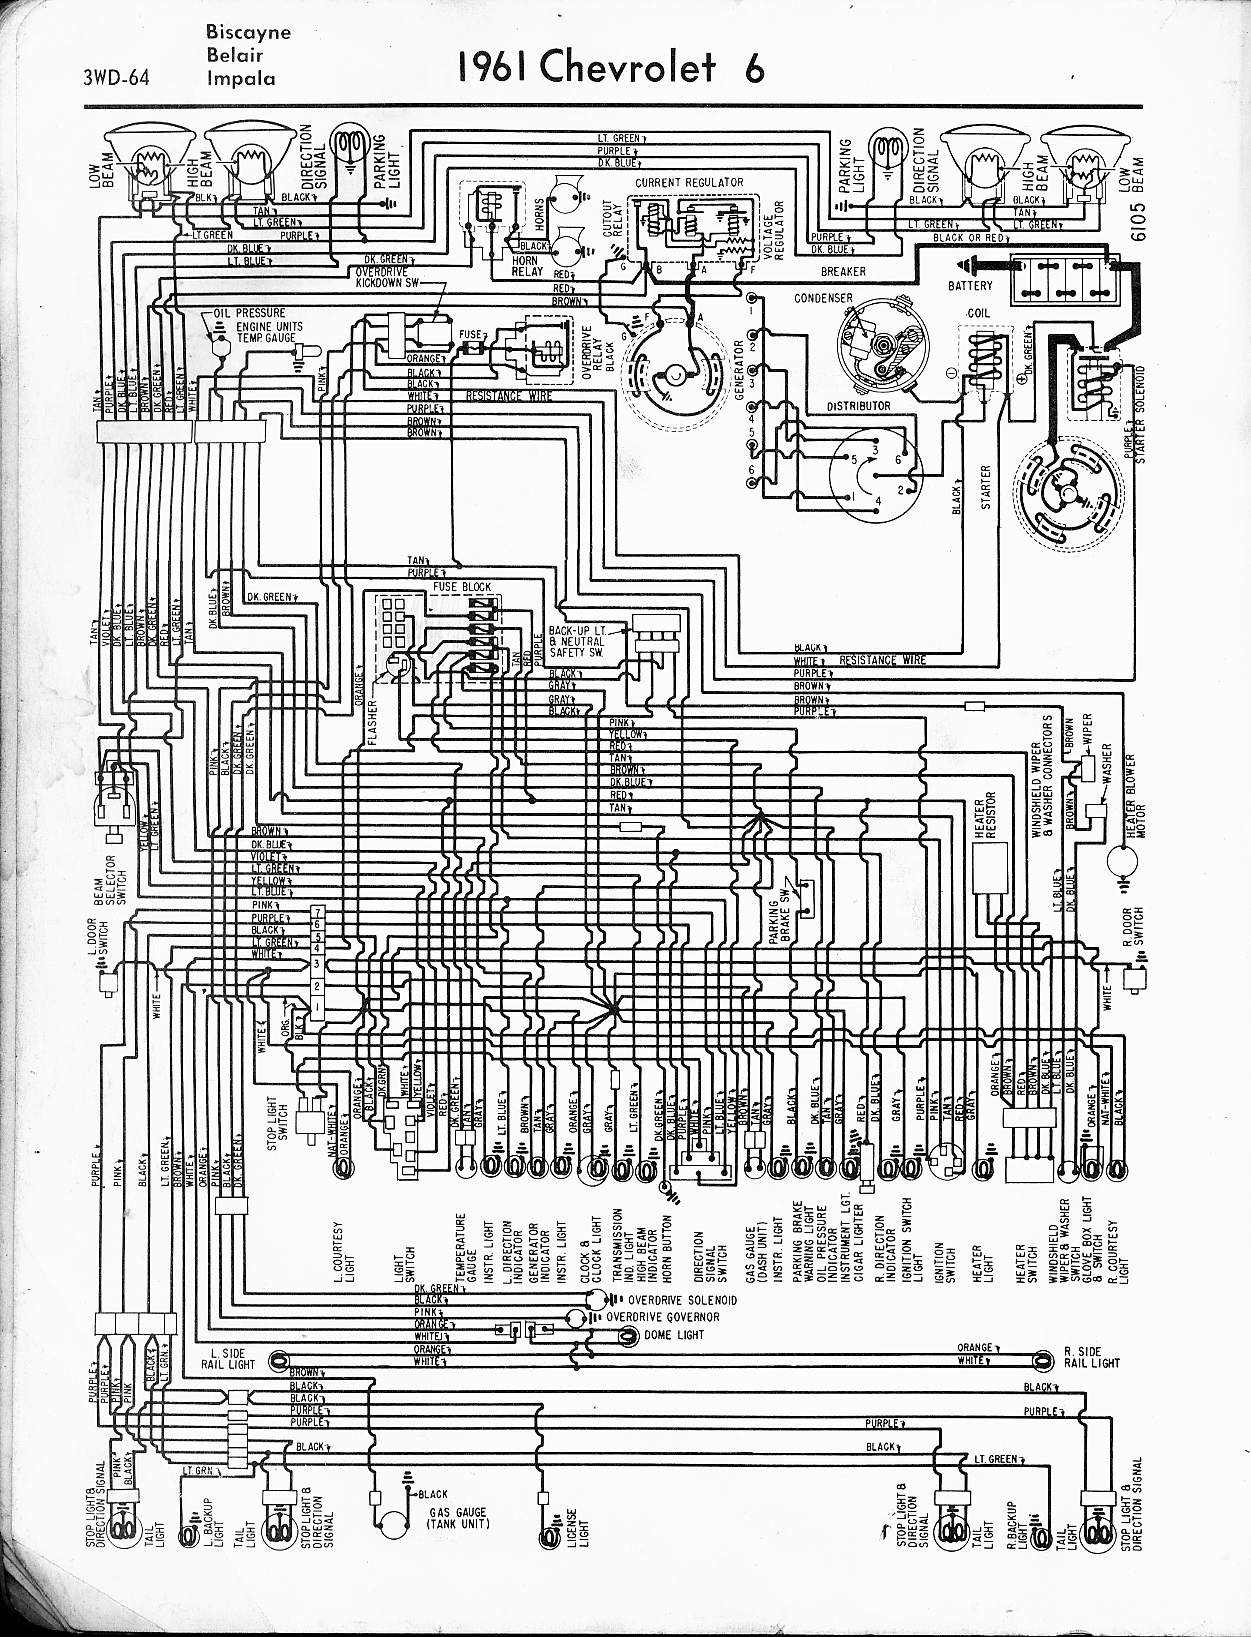 MWireChev61_3WD 064 57 65 chevy wiring diagrams c10 wiring diagram at edmiracle.co